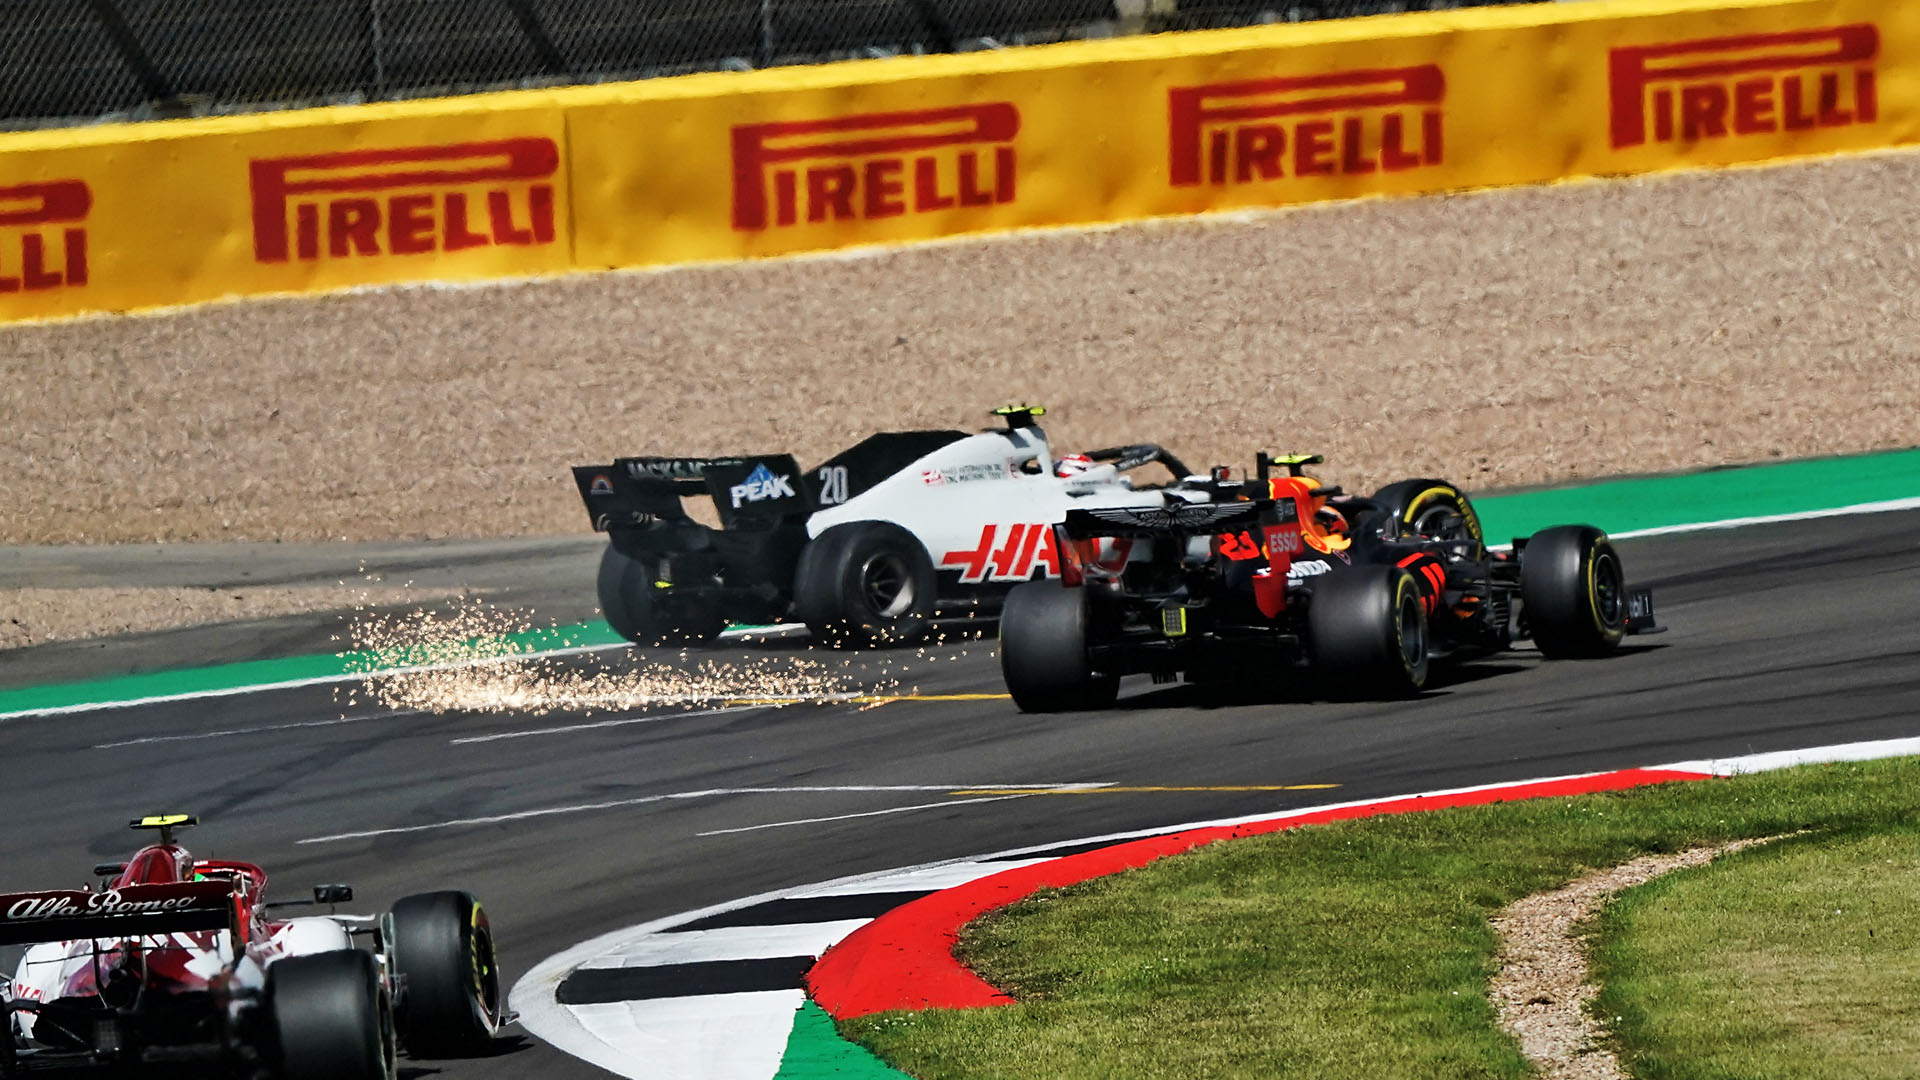 Alex Albon Rejects Call For More Patient Approach After Clashes With Hamilton And Magnussen Formula 1